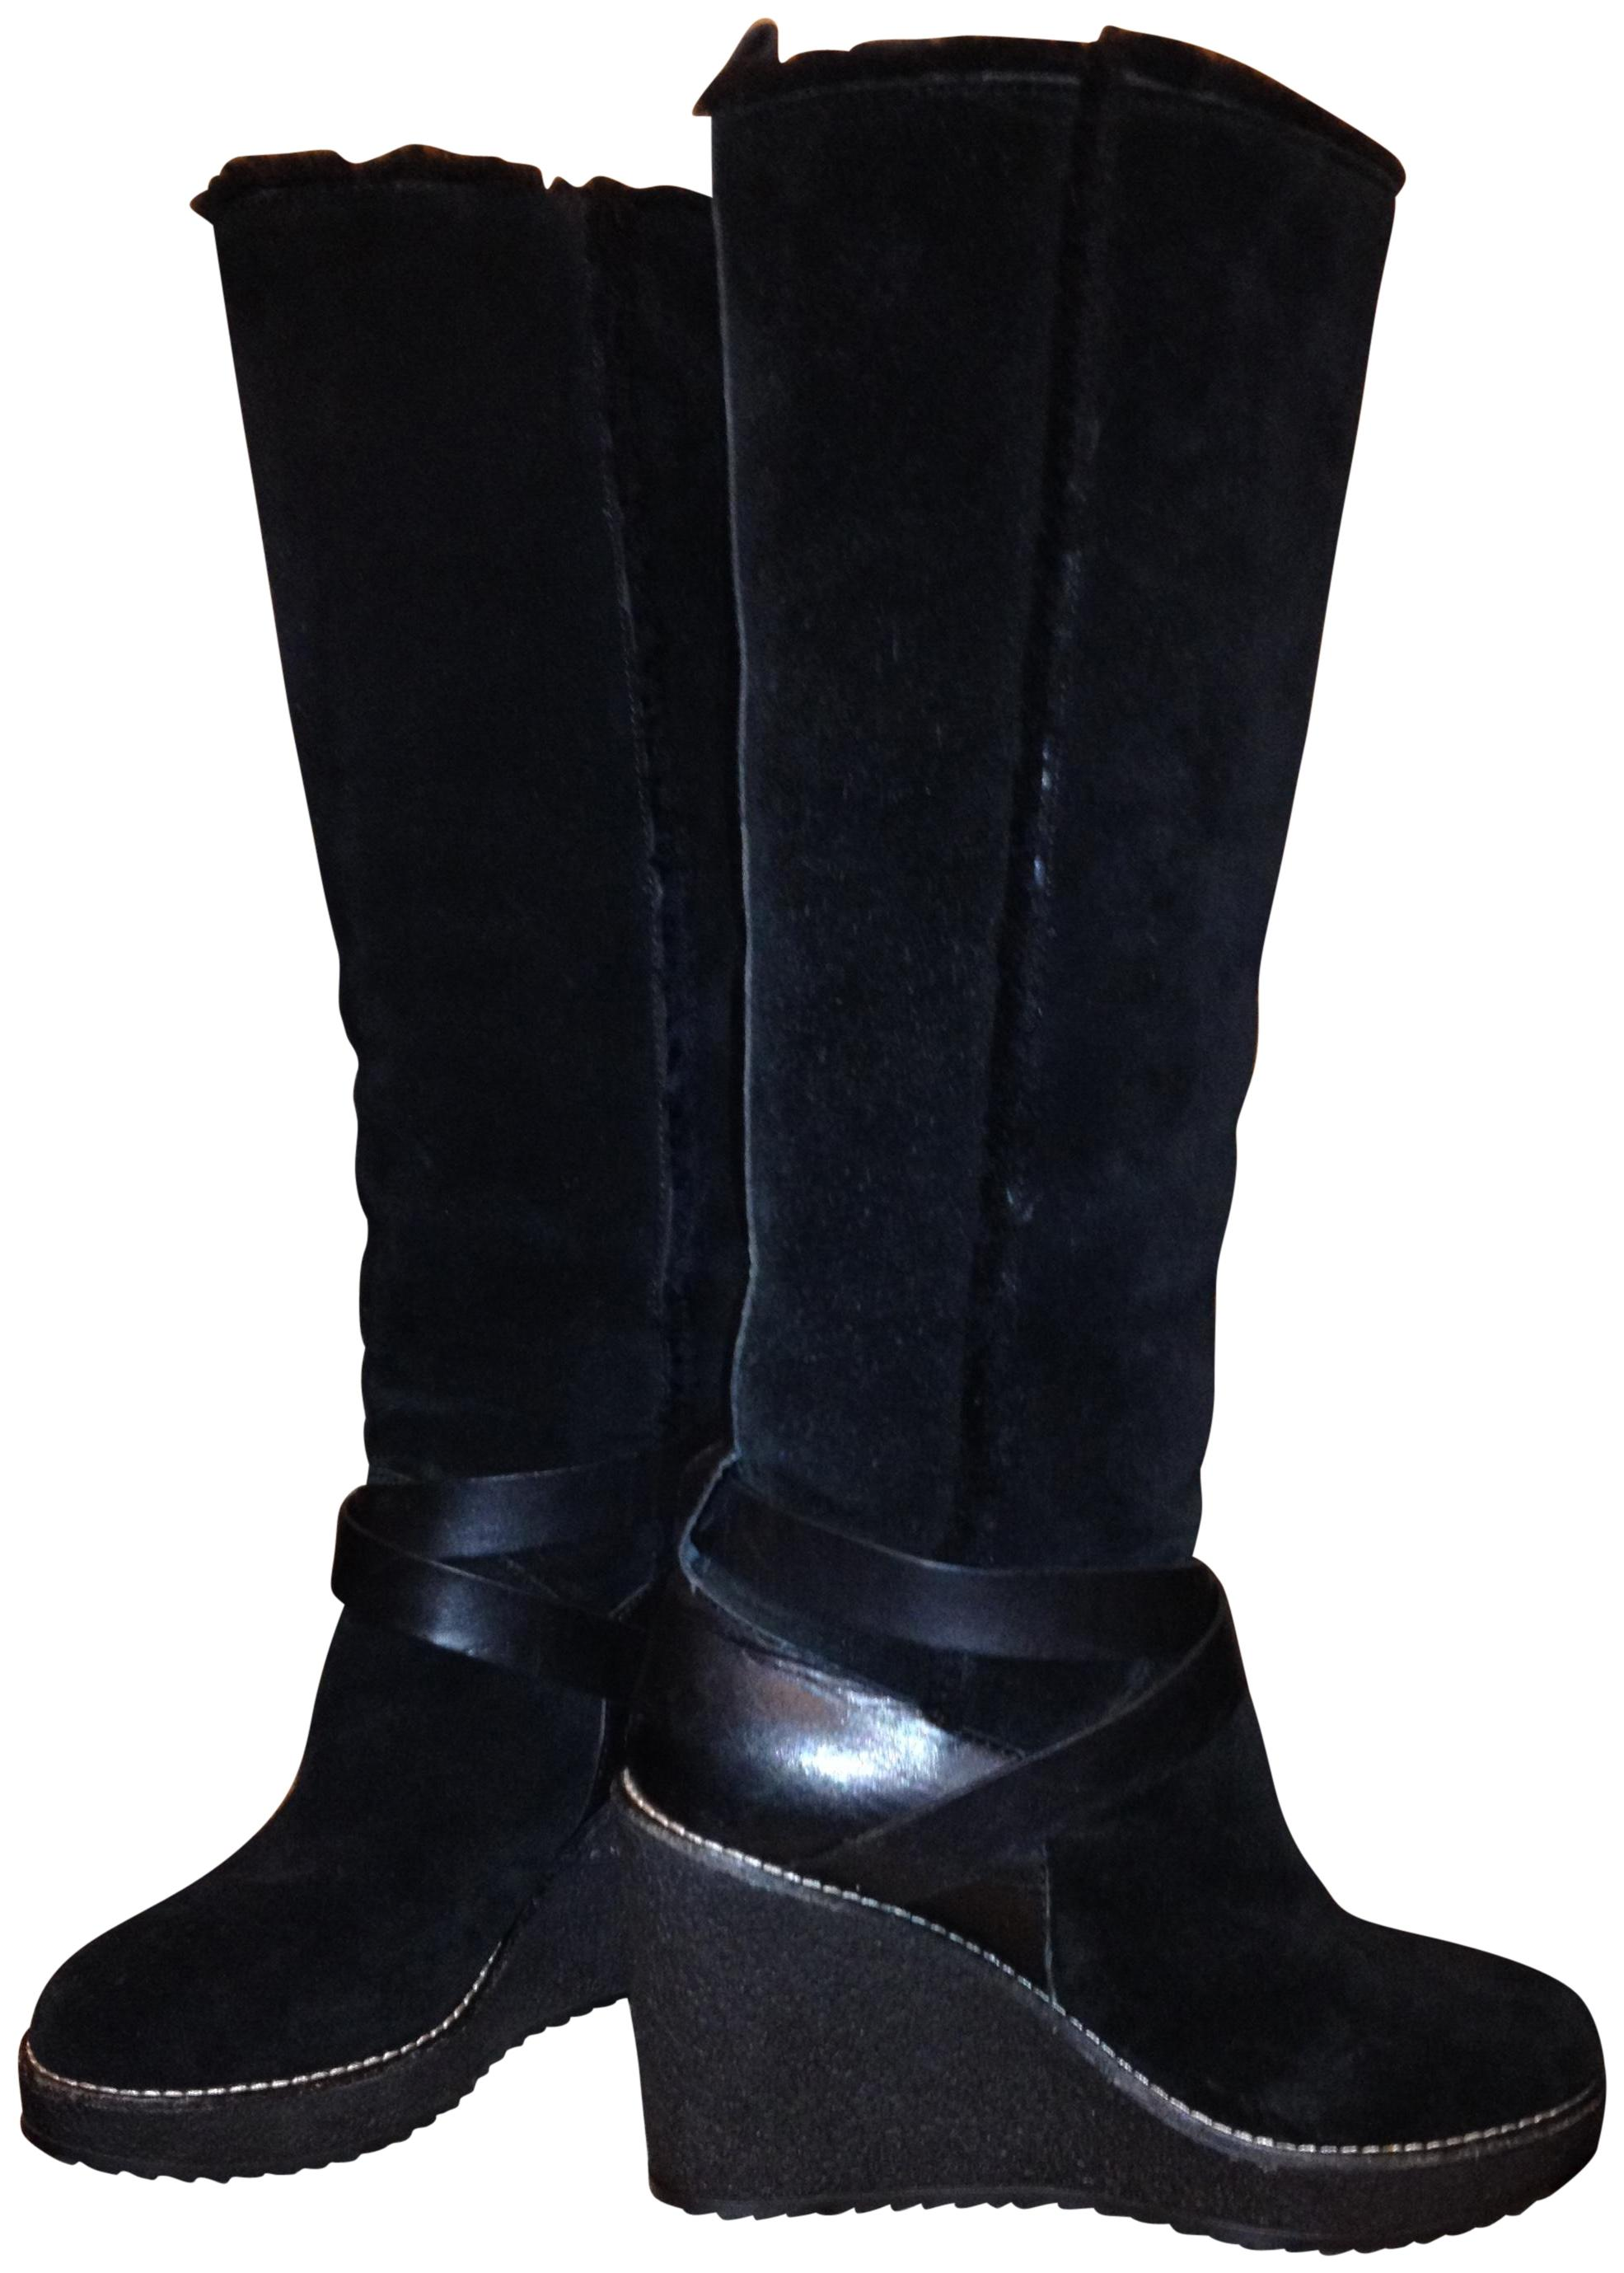 discounts buy cheap factory outlet Tory Burch Knee-High Wedge Boots outlet original MrxedKtP6